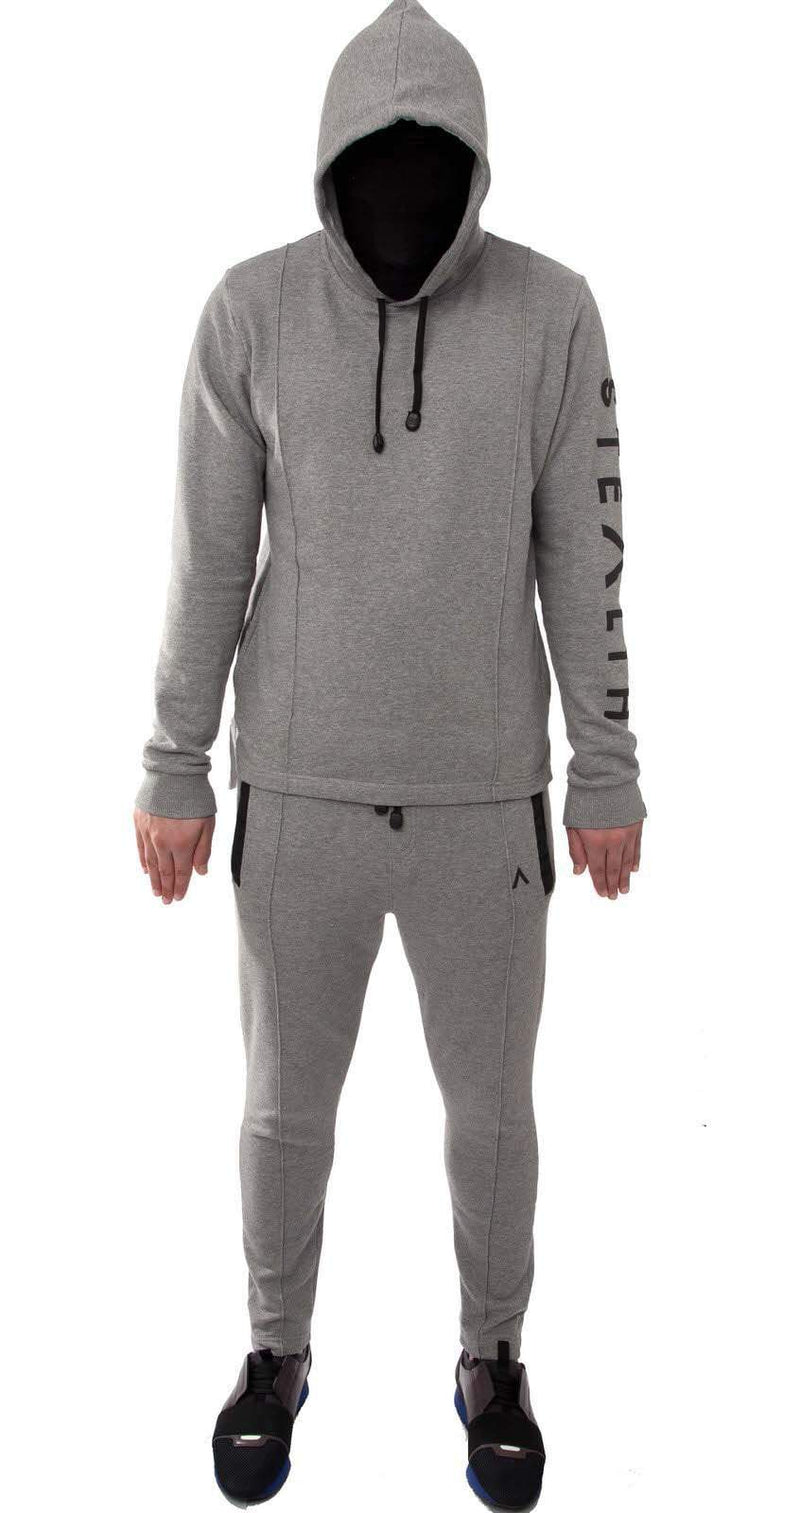 Stealth London Clothing Co Small (SlimFit) Intruder Tracksuit (Grey)